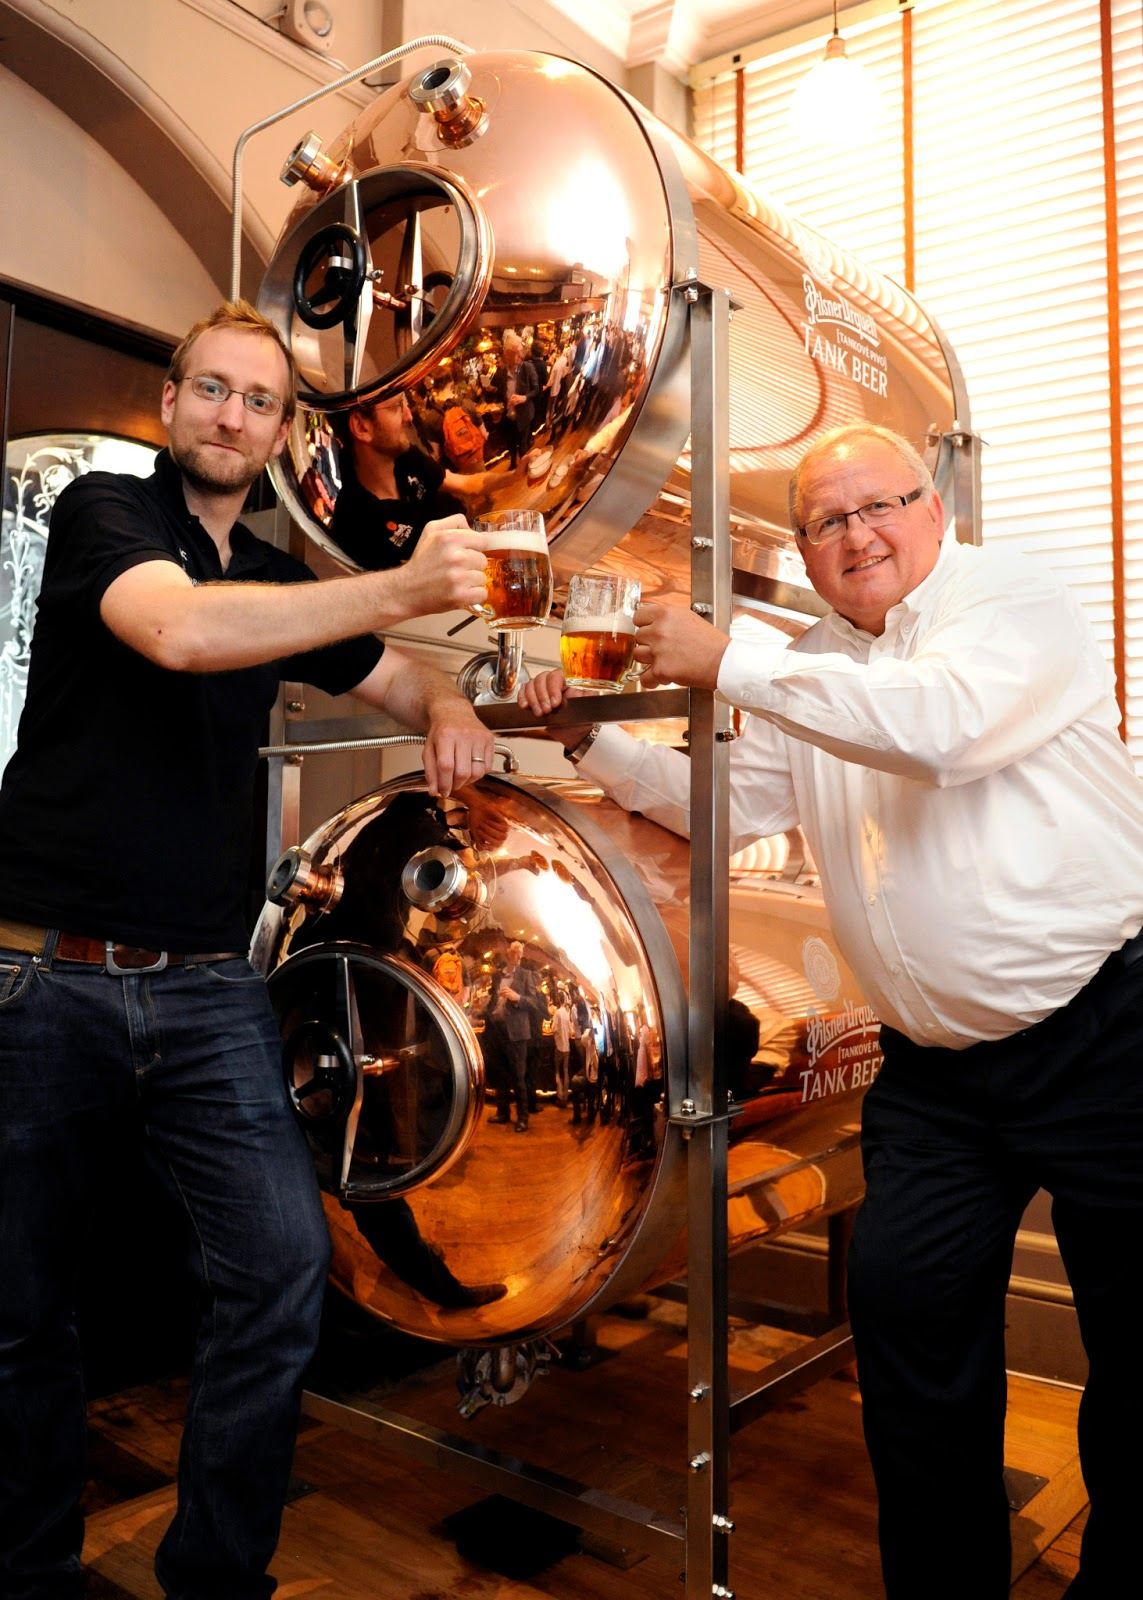 hungerlust: Pilsner Urquell launches Tank Beer at the White Horse